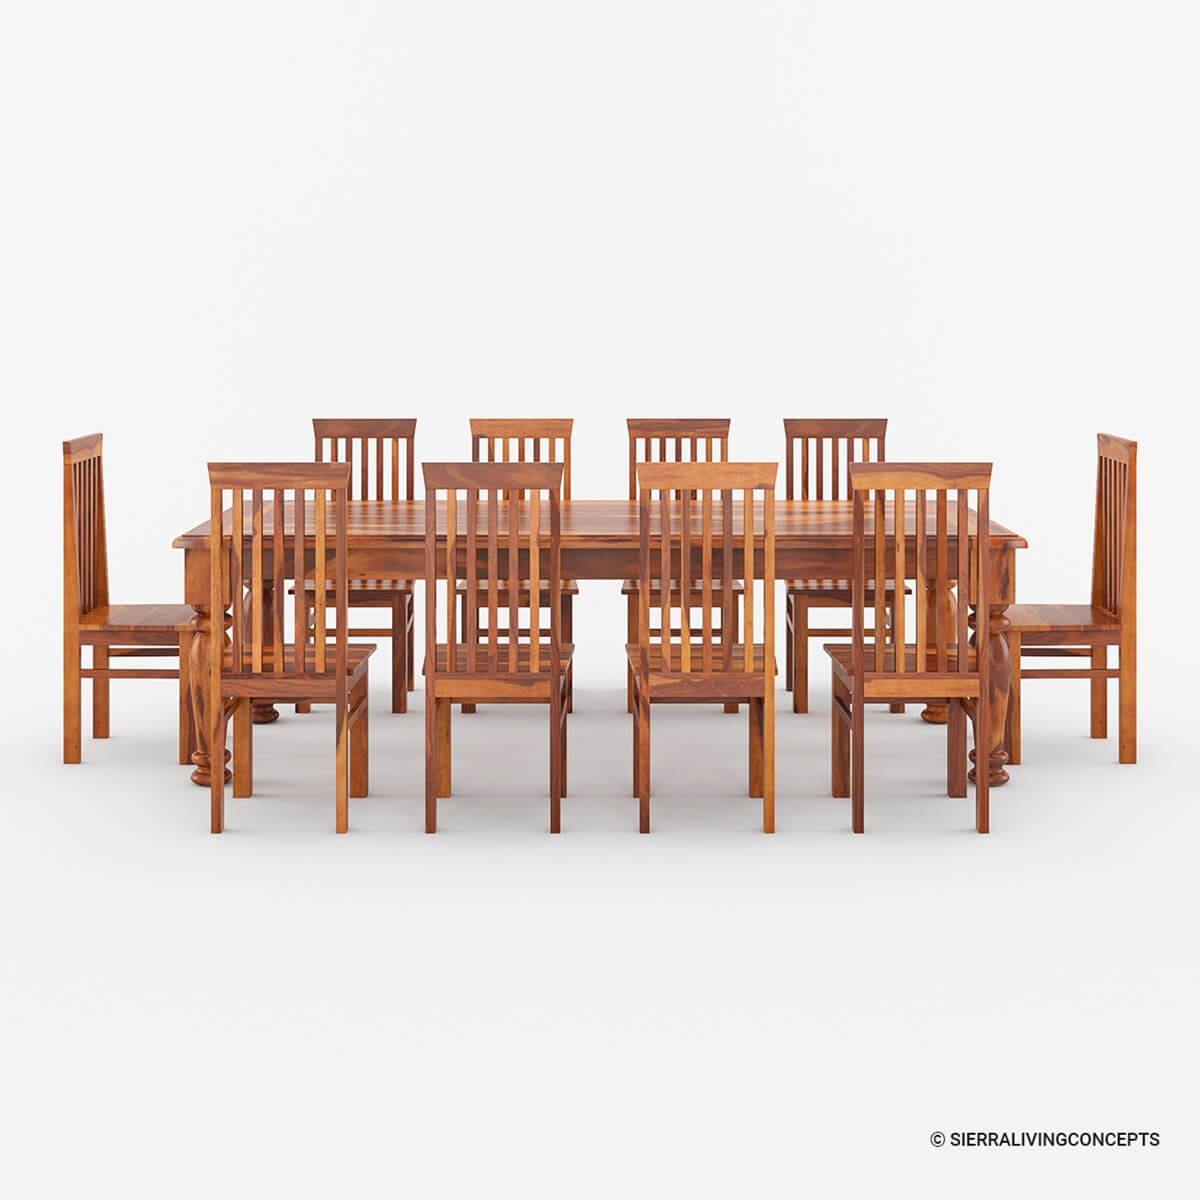 100 Large Solid Wood Dining Table Table Combination  : 41273 from 45.77.108.62 size 800 x 800 jpeg 51kB